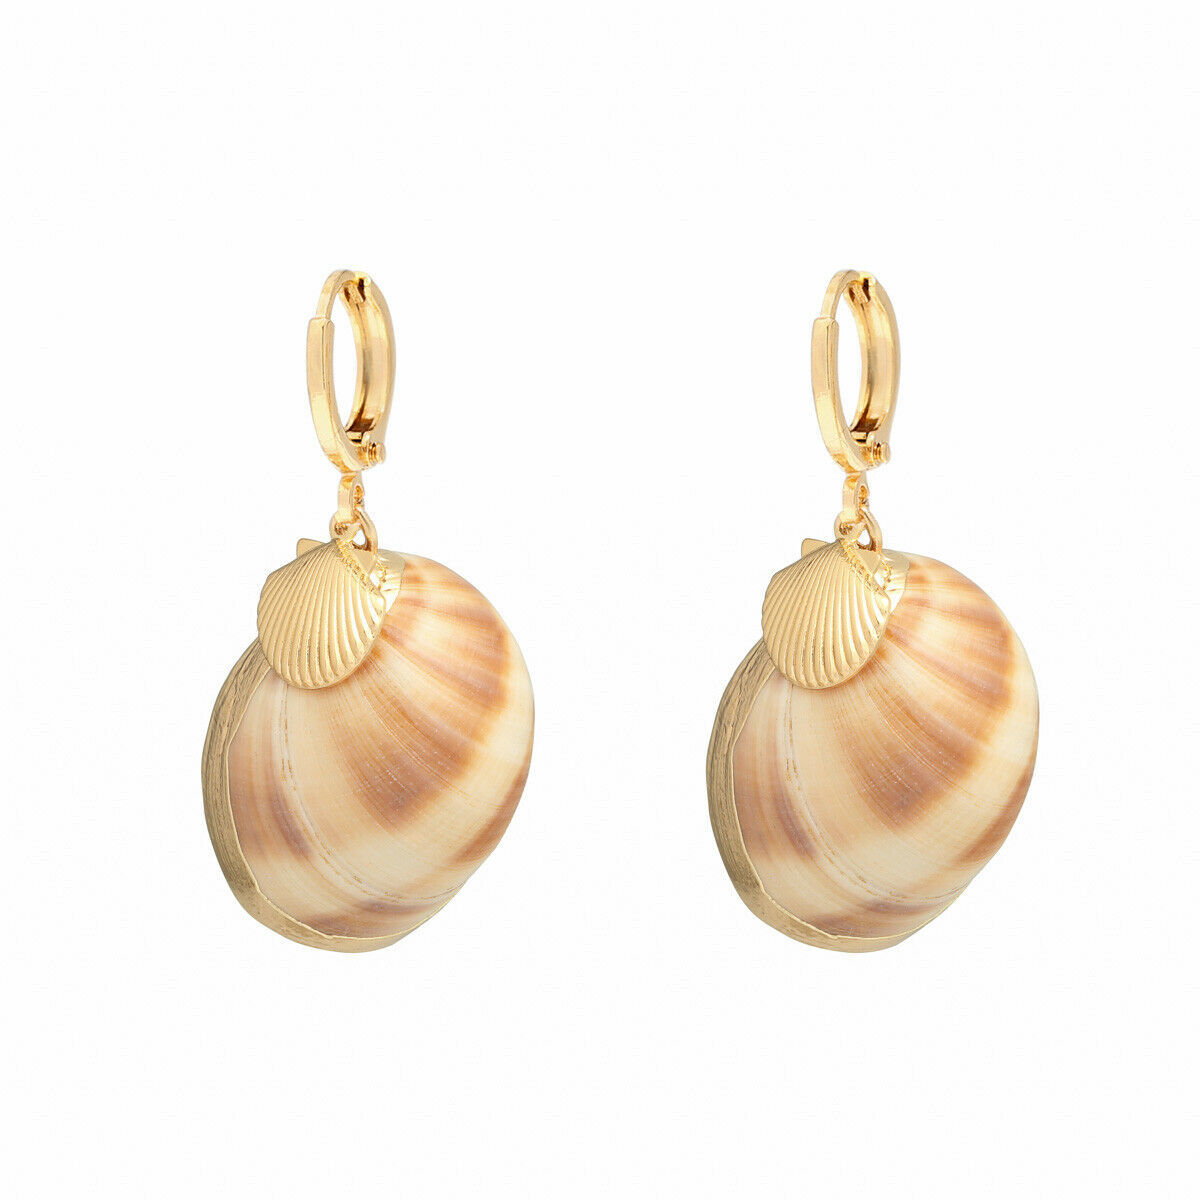 Primary image for Gold Real Shell Charm Earrings seashell beach boho fashion jewellery + Gift Box